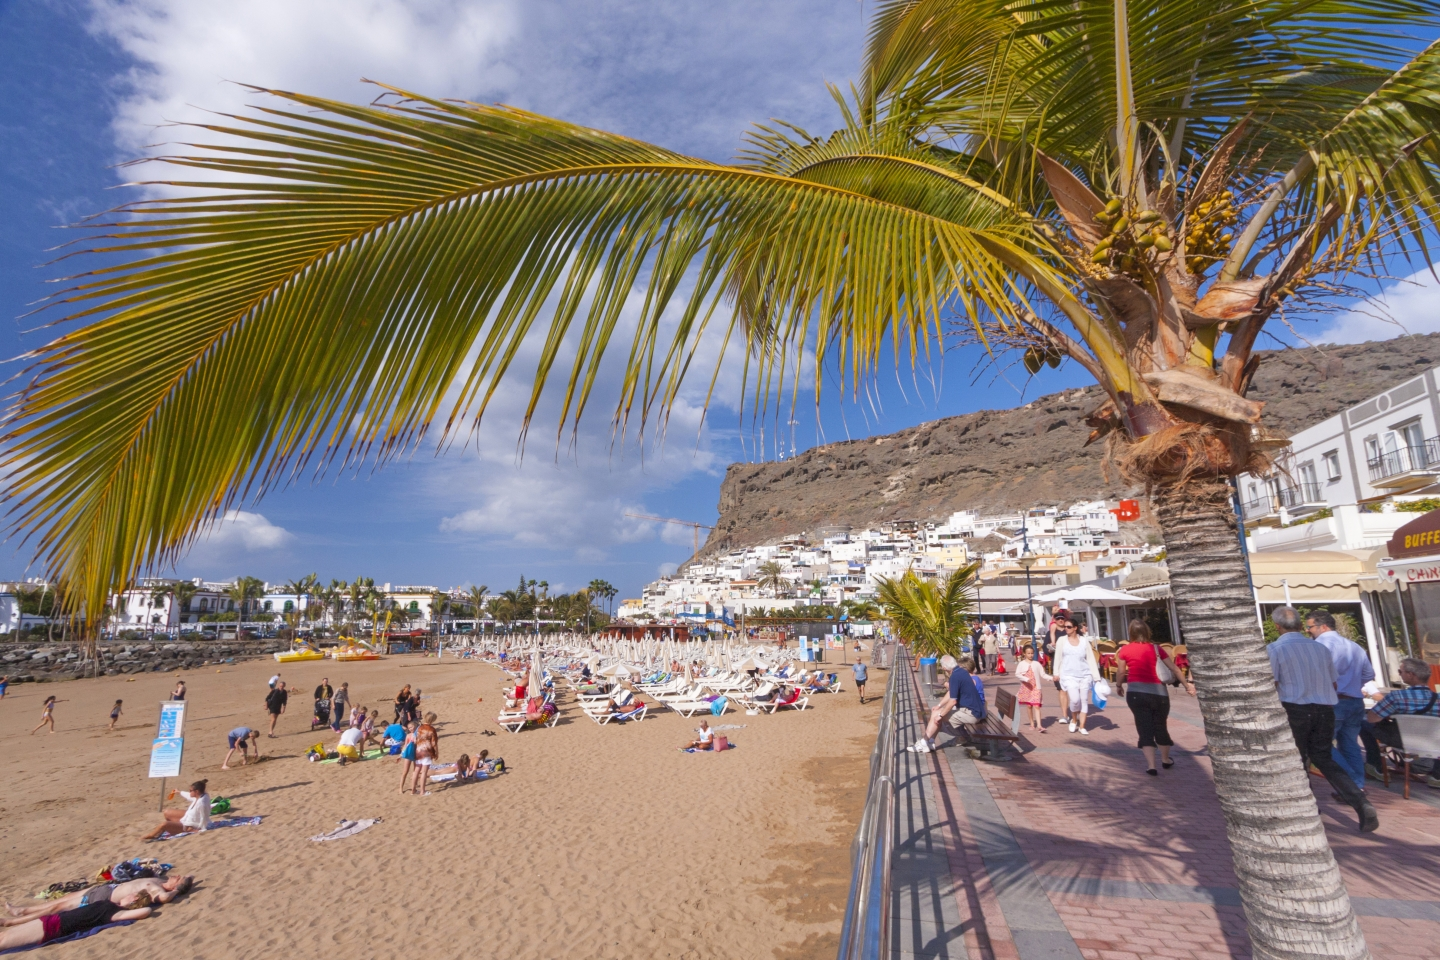 Puerto de Mogán beach and palm trees